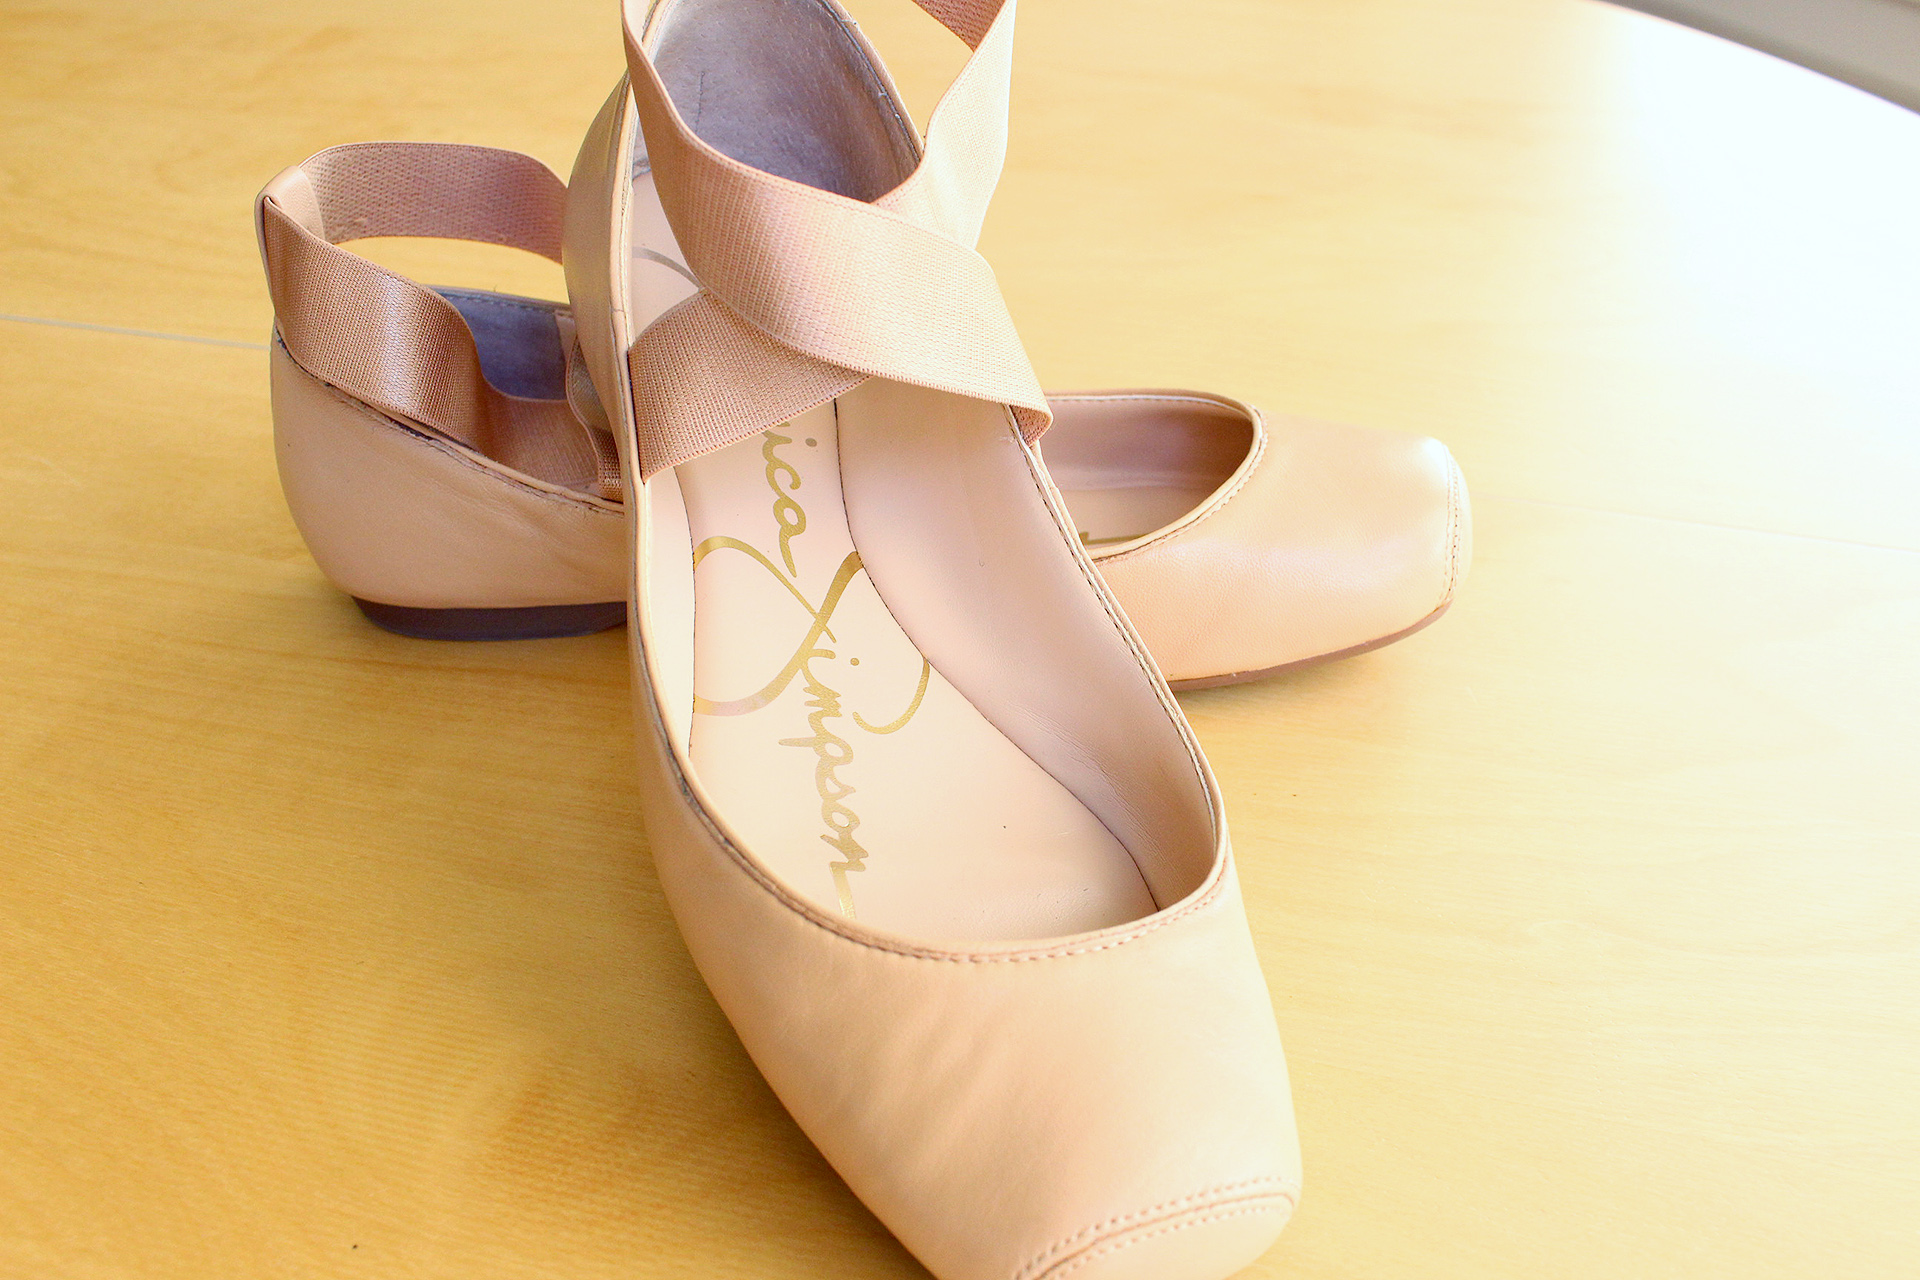 Ballet slippers from Jessica Simpson, Macy's, August 2016 Sewing Pinup Haul | @vintageontap